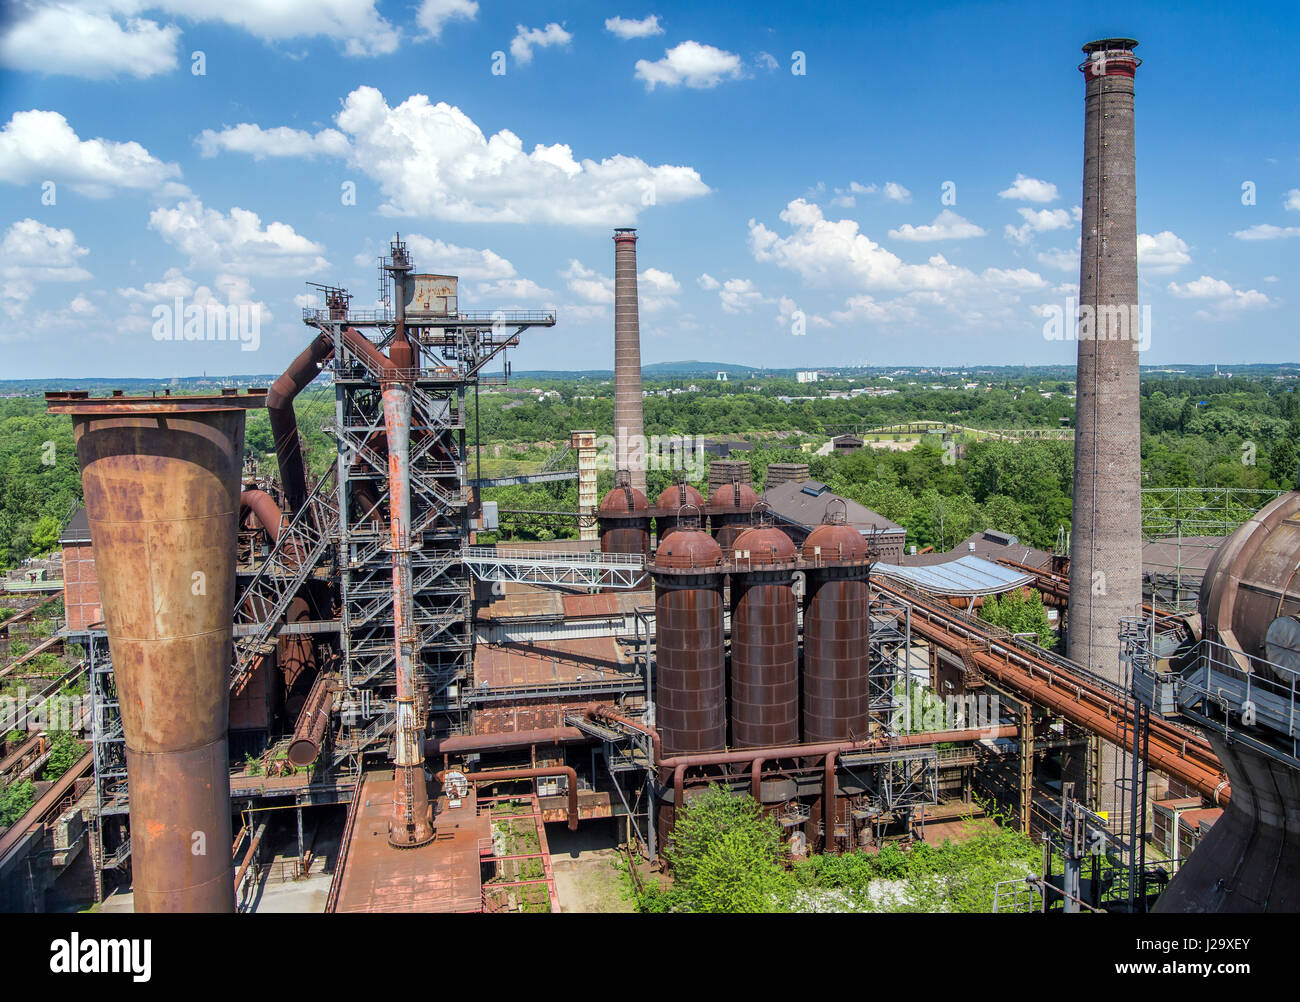 old-industrial-buildings-and-chimneys-of-abandoned-steel-mill-plant-J29XEY.jpg